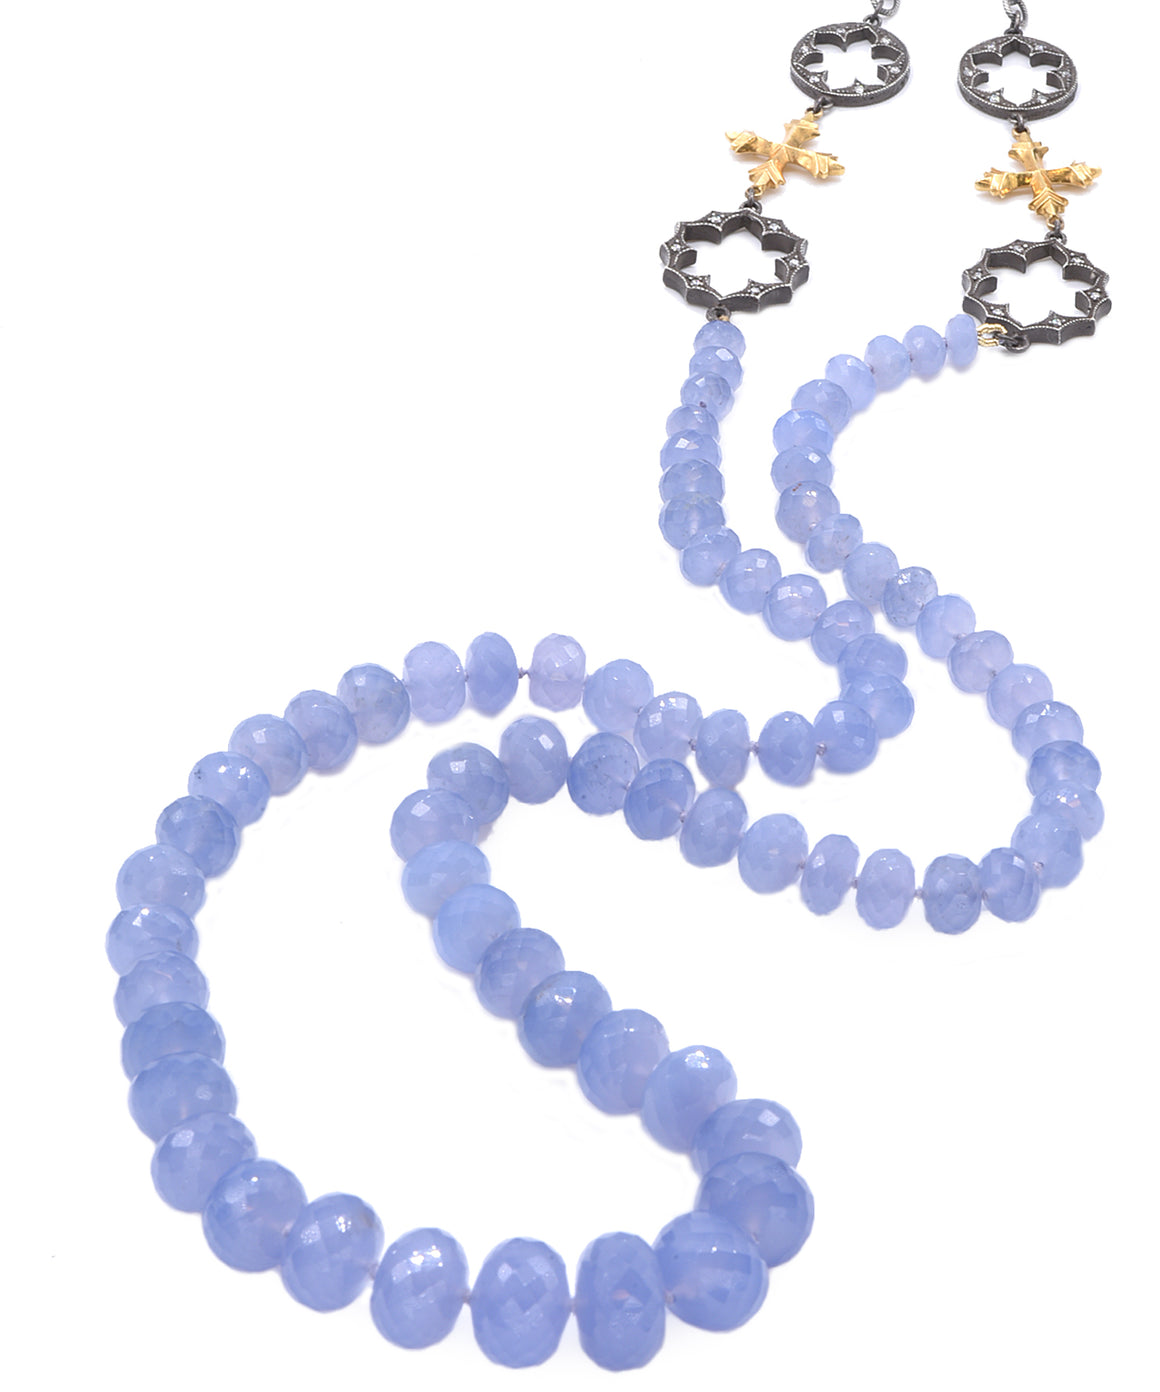 Long Chalcedony Bead Necklace with Cross Stations - Lesley Ann Jewels